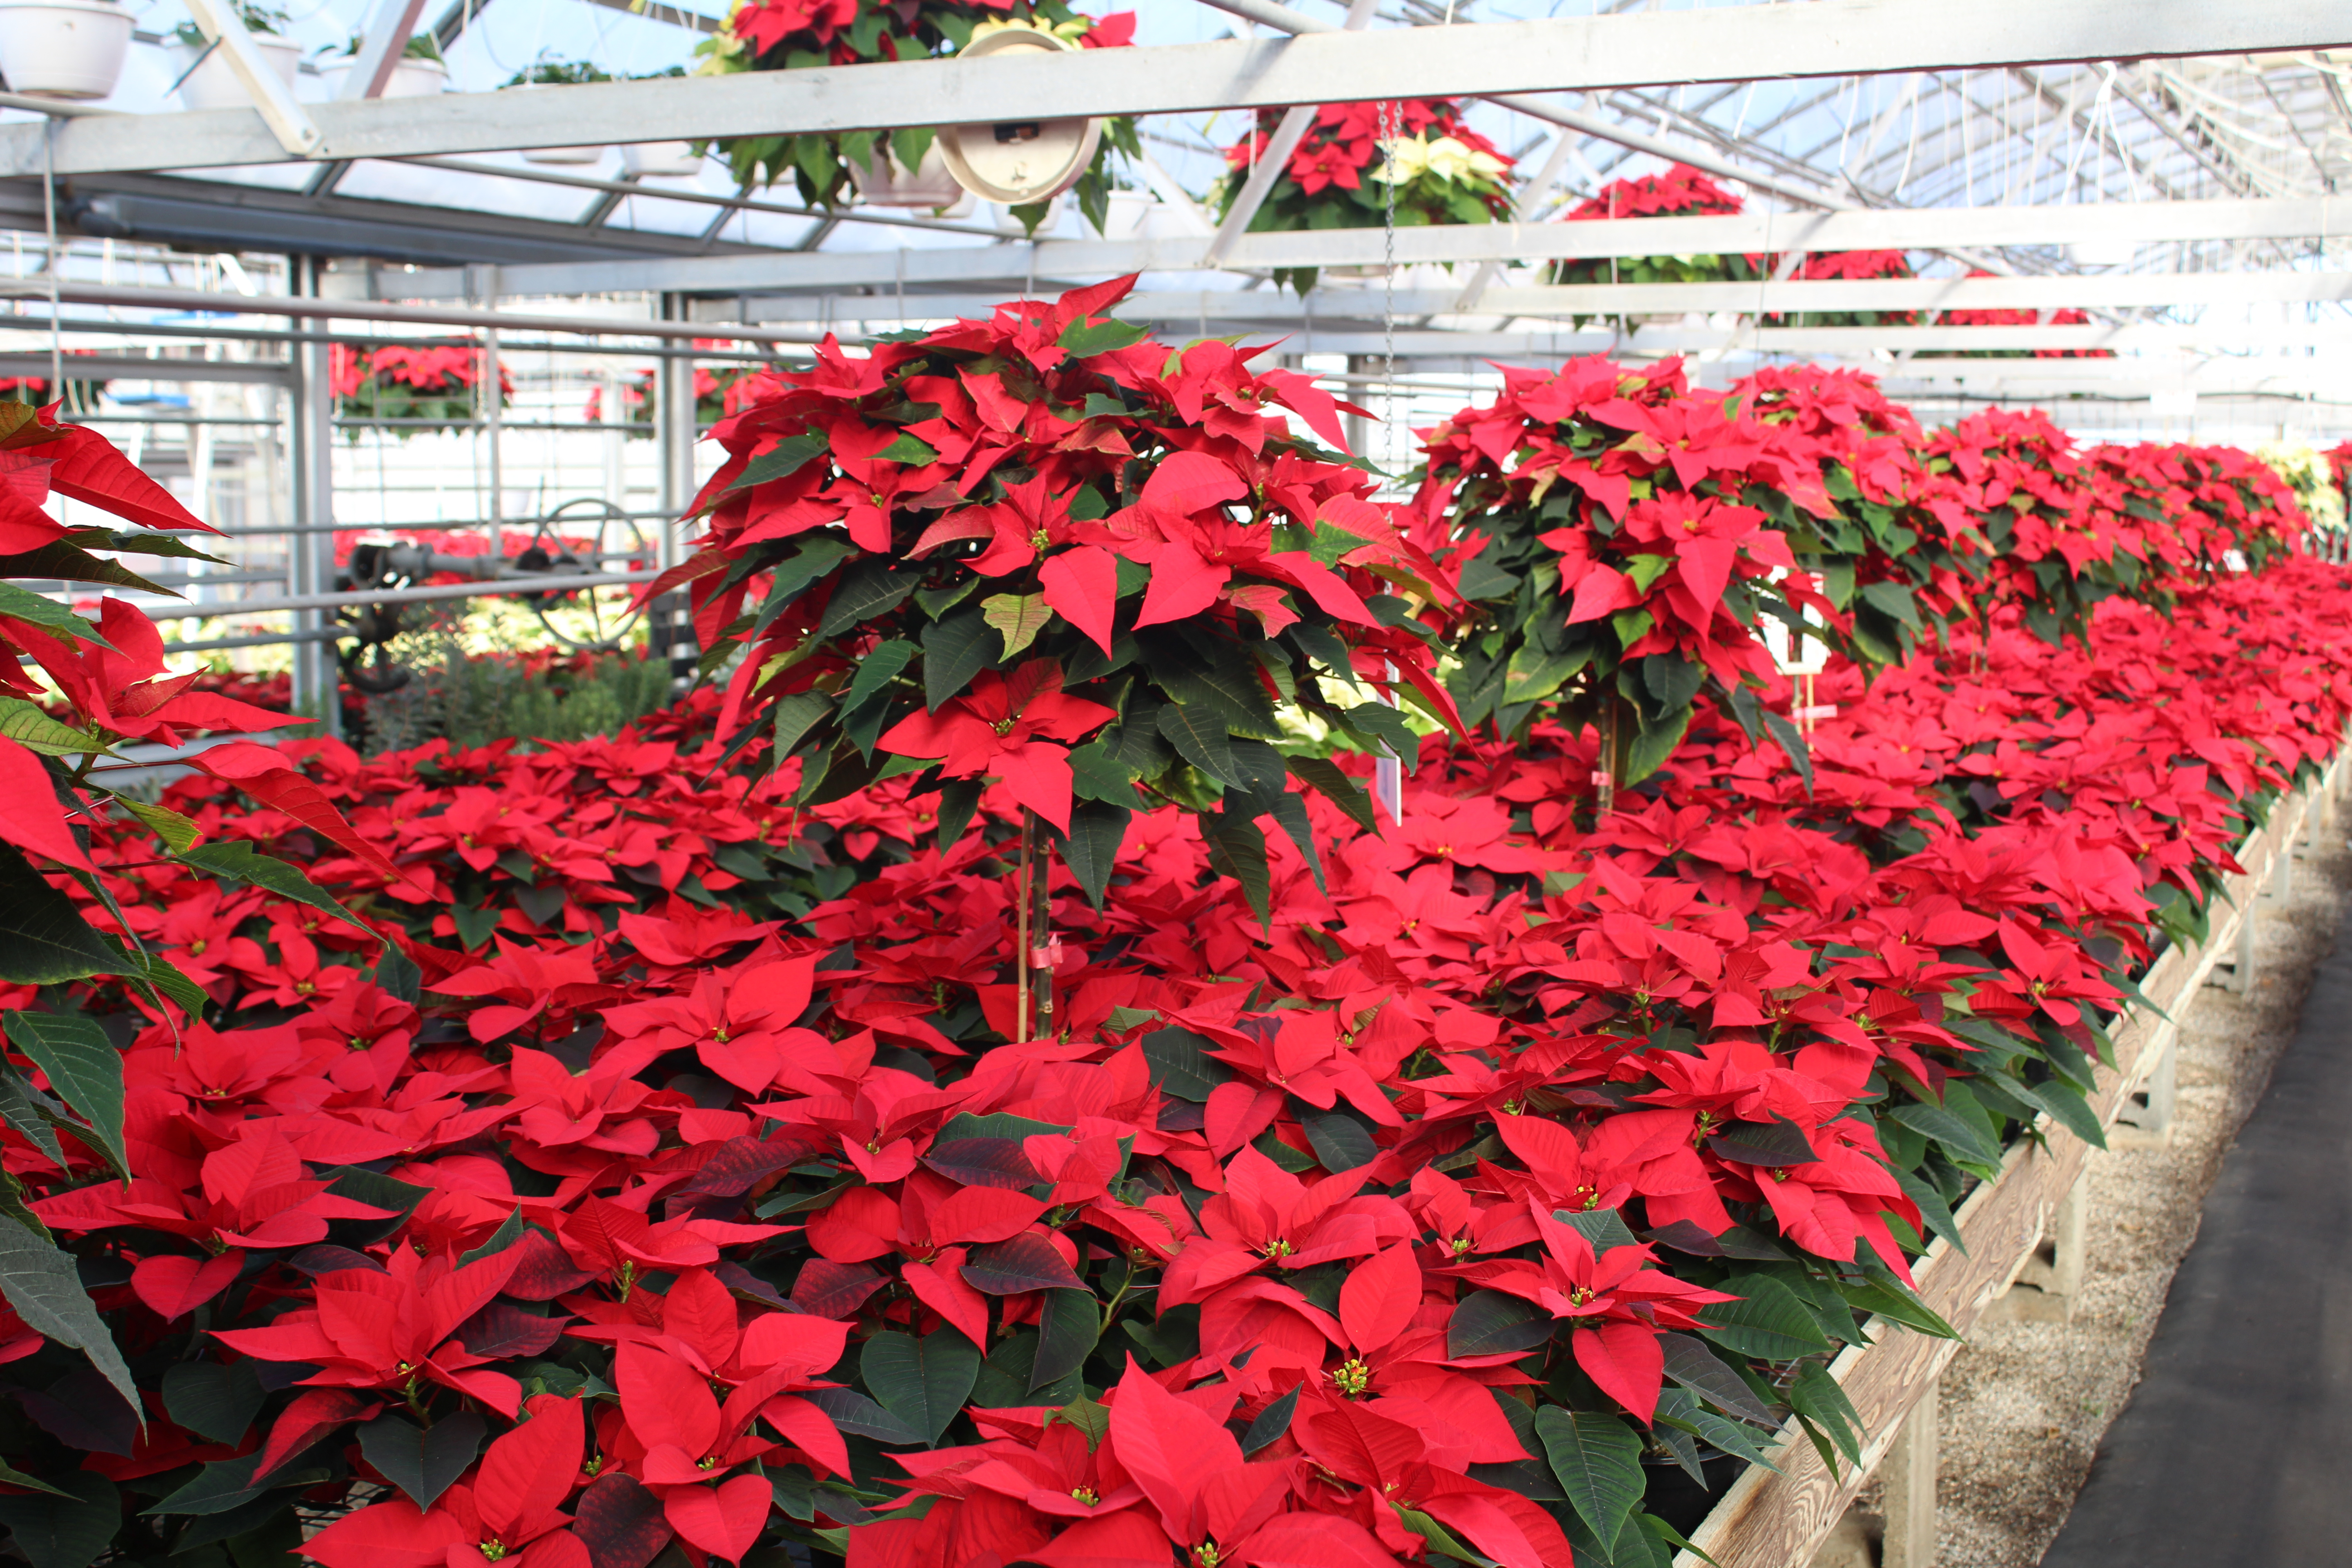 Willow Brook Greenhouse Family Owned & Operated Route 10 flower varieties plants garden supply flowers Home & Garden poinsettias pansies bedding plants Christmas season vegetable plants frames boxes succulents pots fertilizers locally owned tomatoes